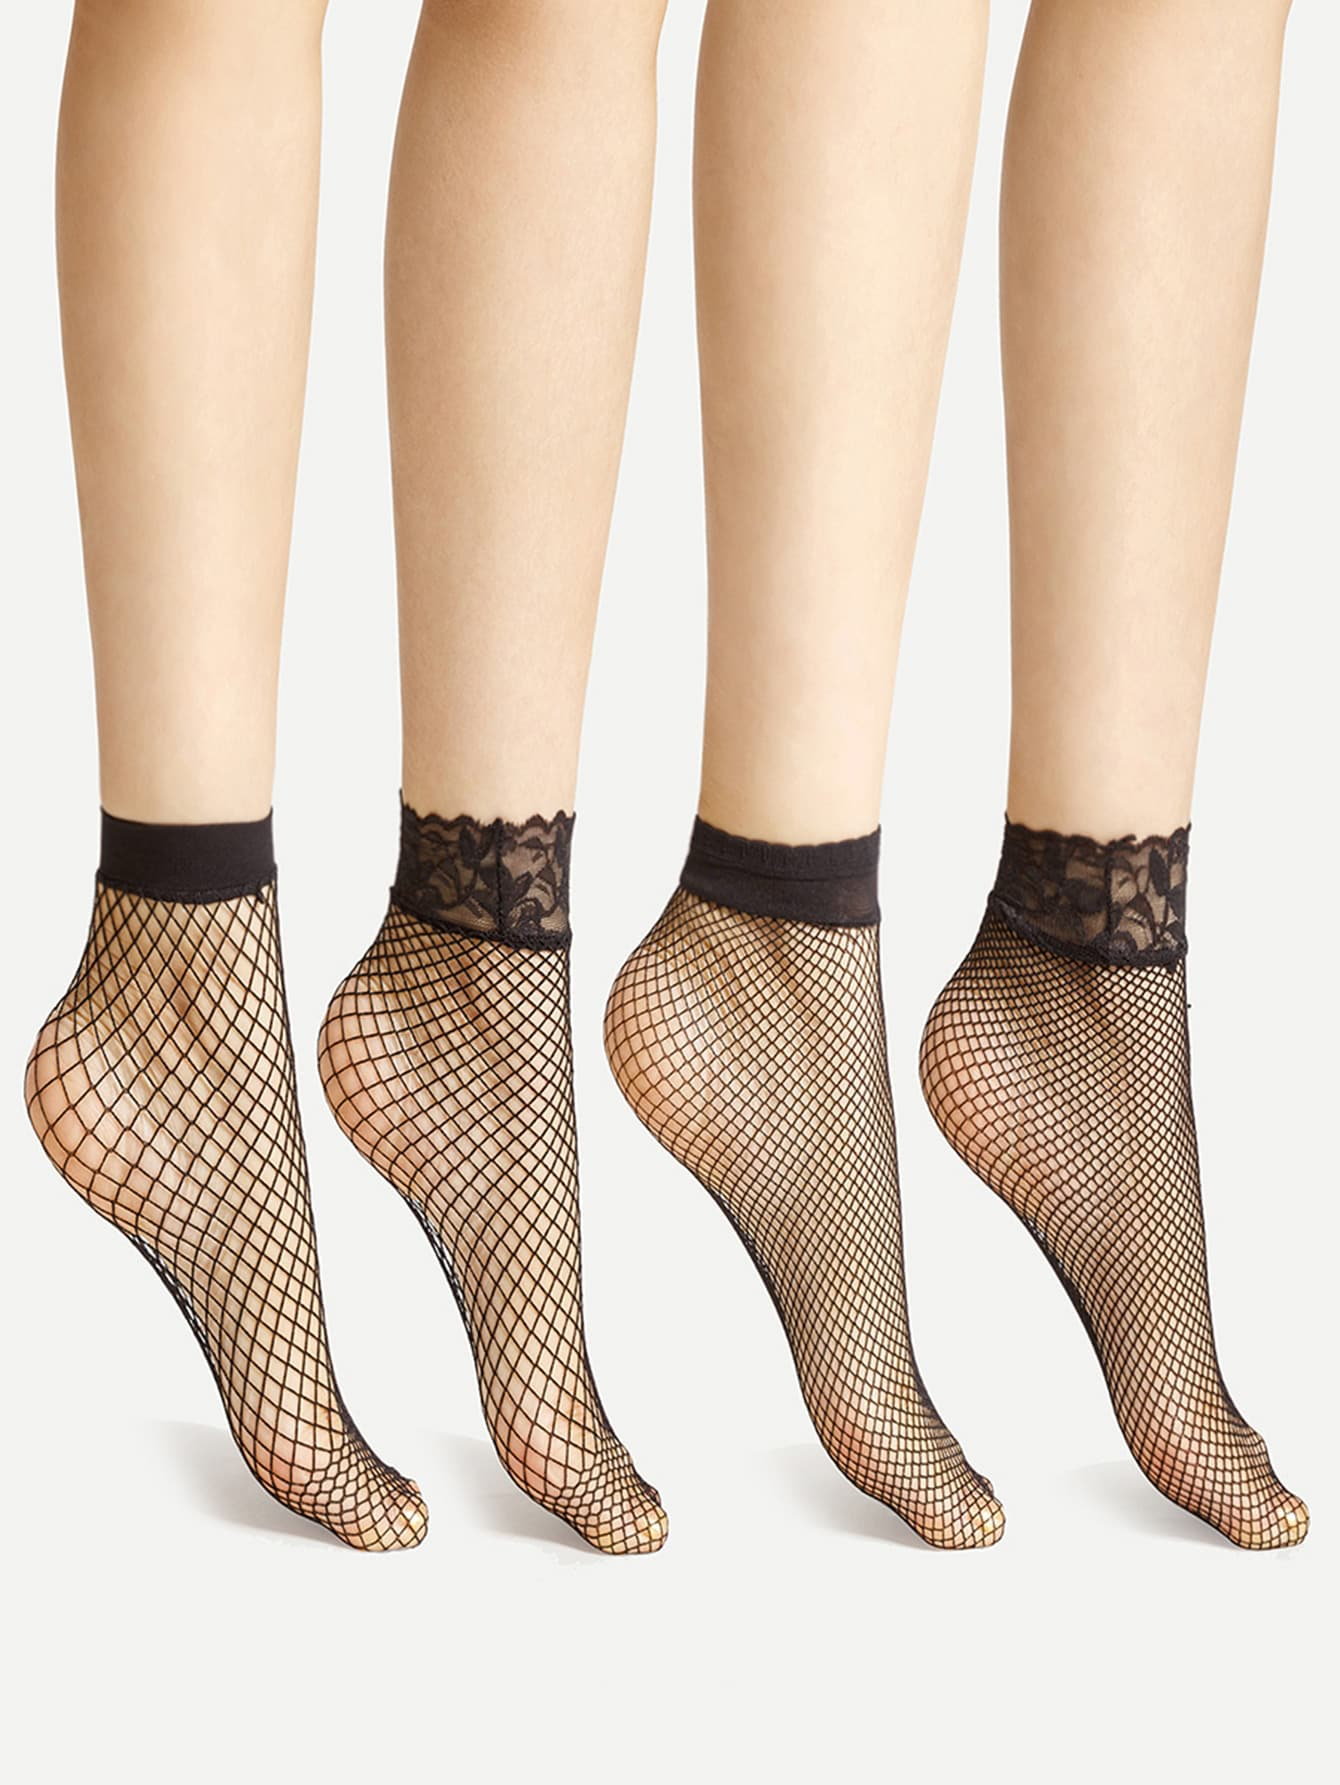 Lace Cuff Fishnet Ankle Socks 4 Pairs new safurance 1 pairs long cuff soft